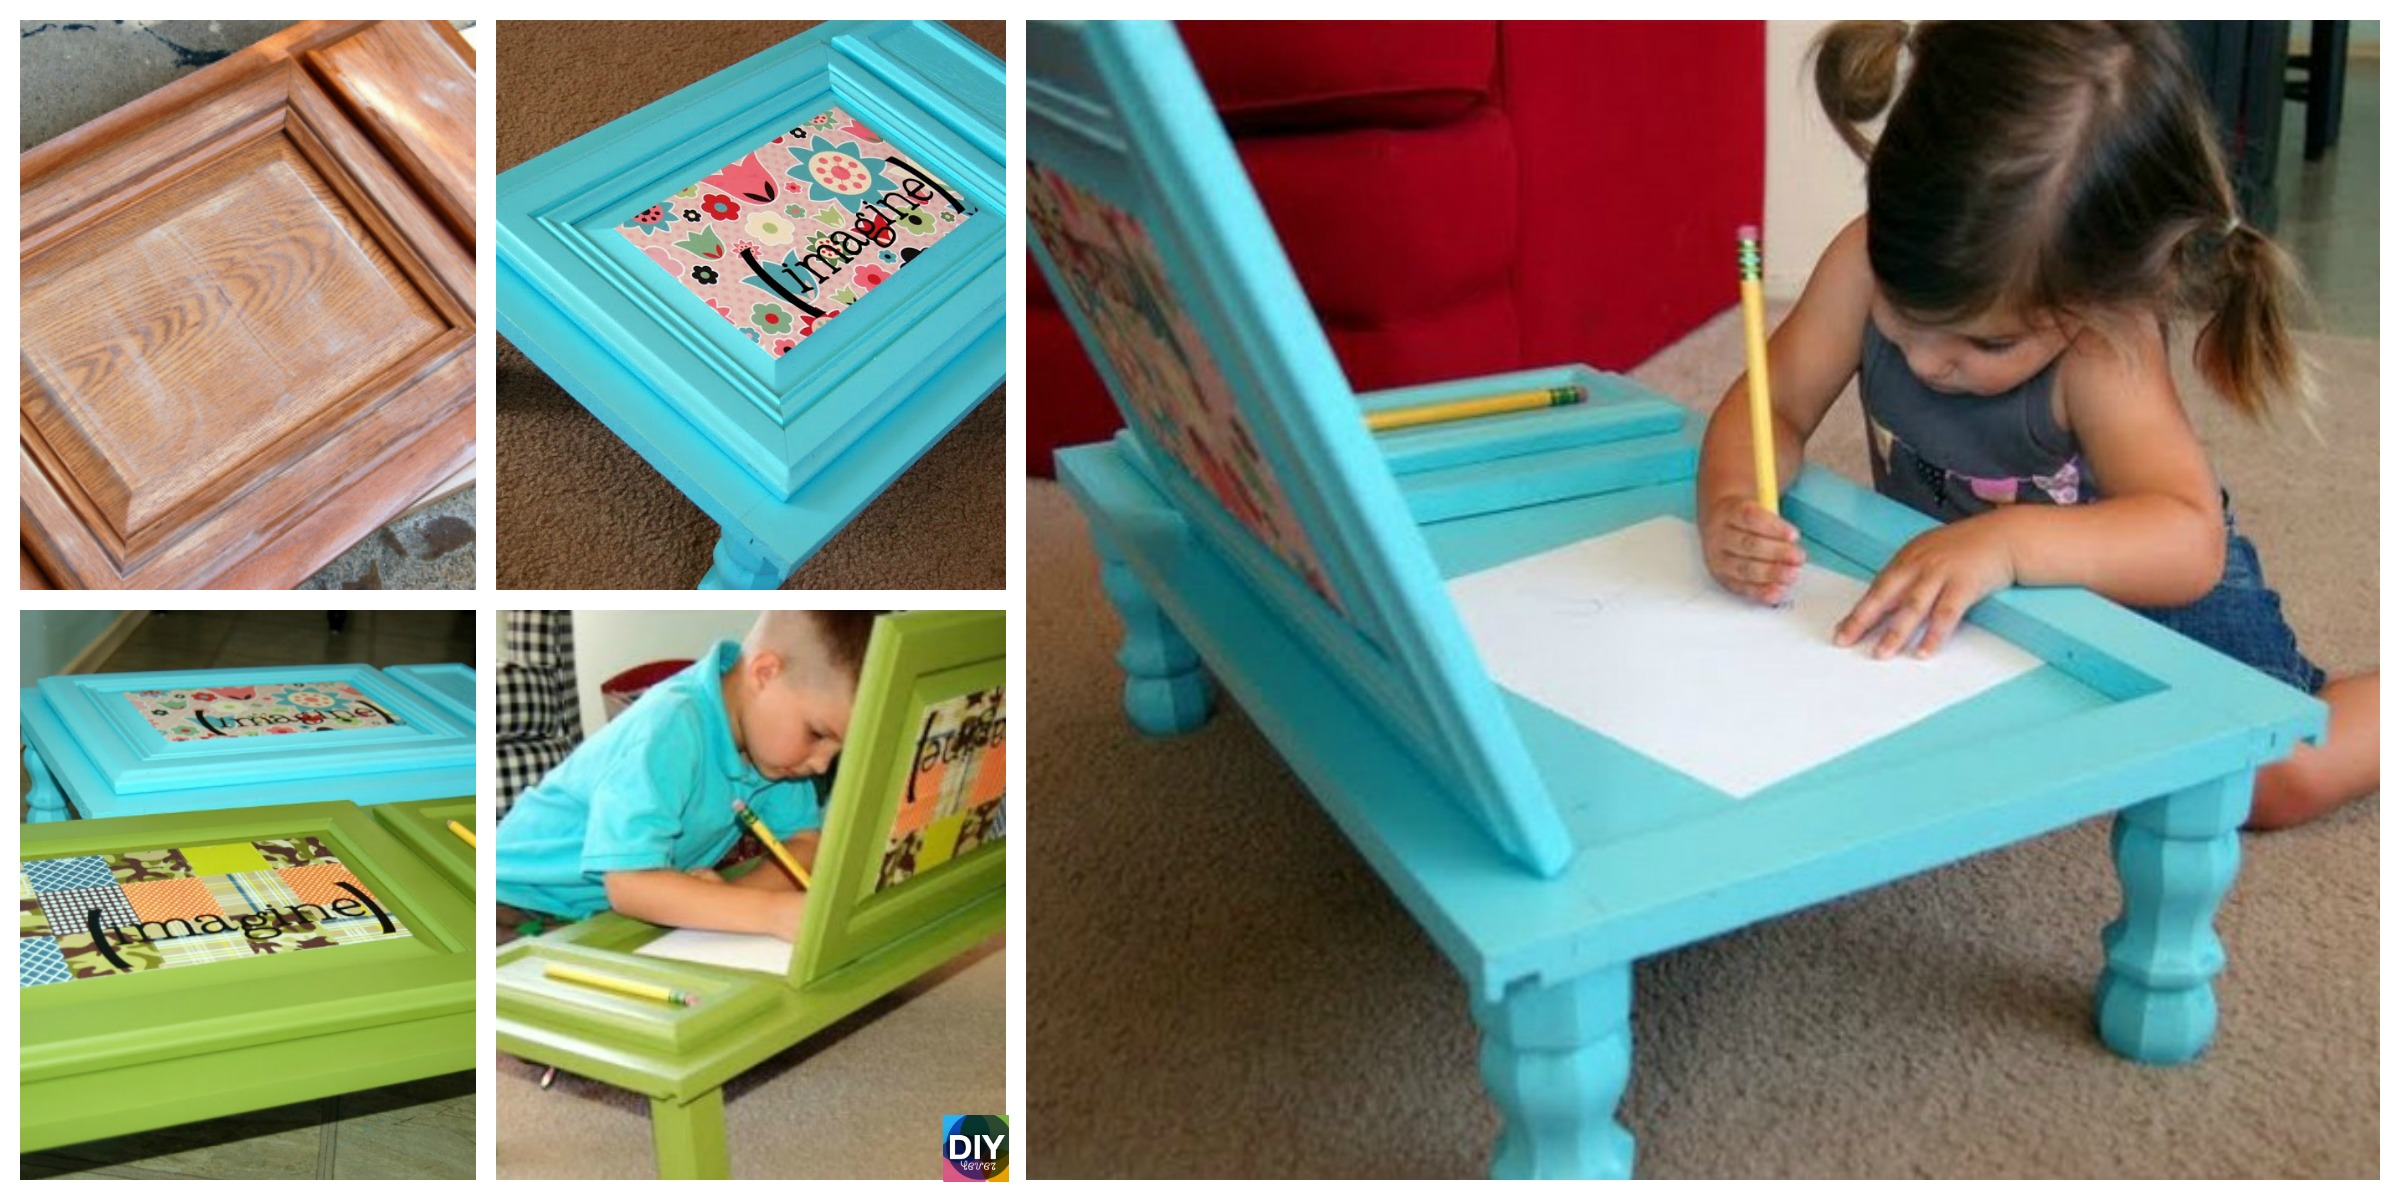 DIY Art Desk From Recycled Cabinet Door